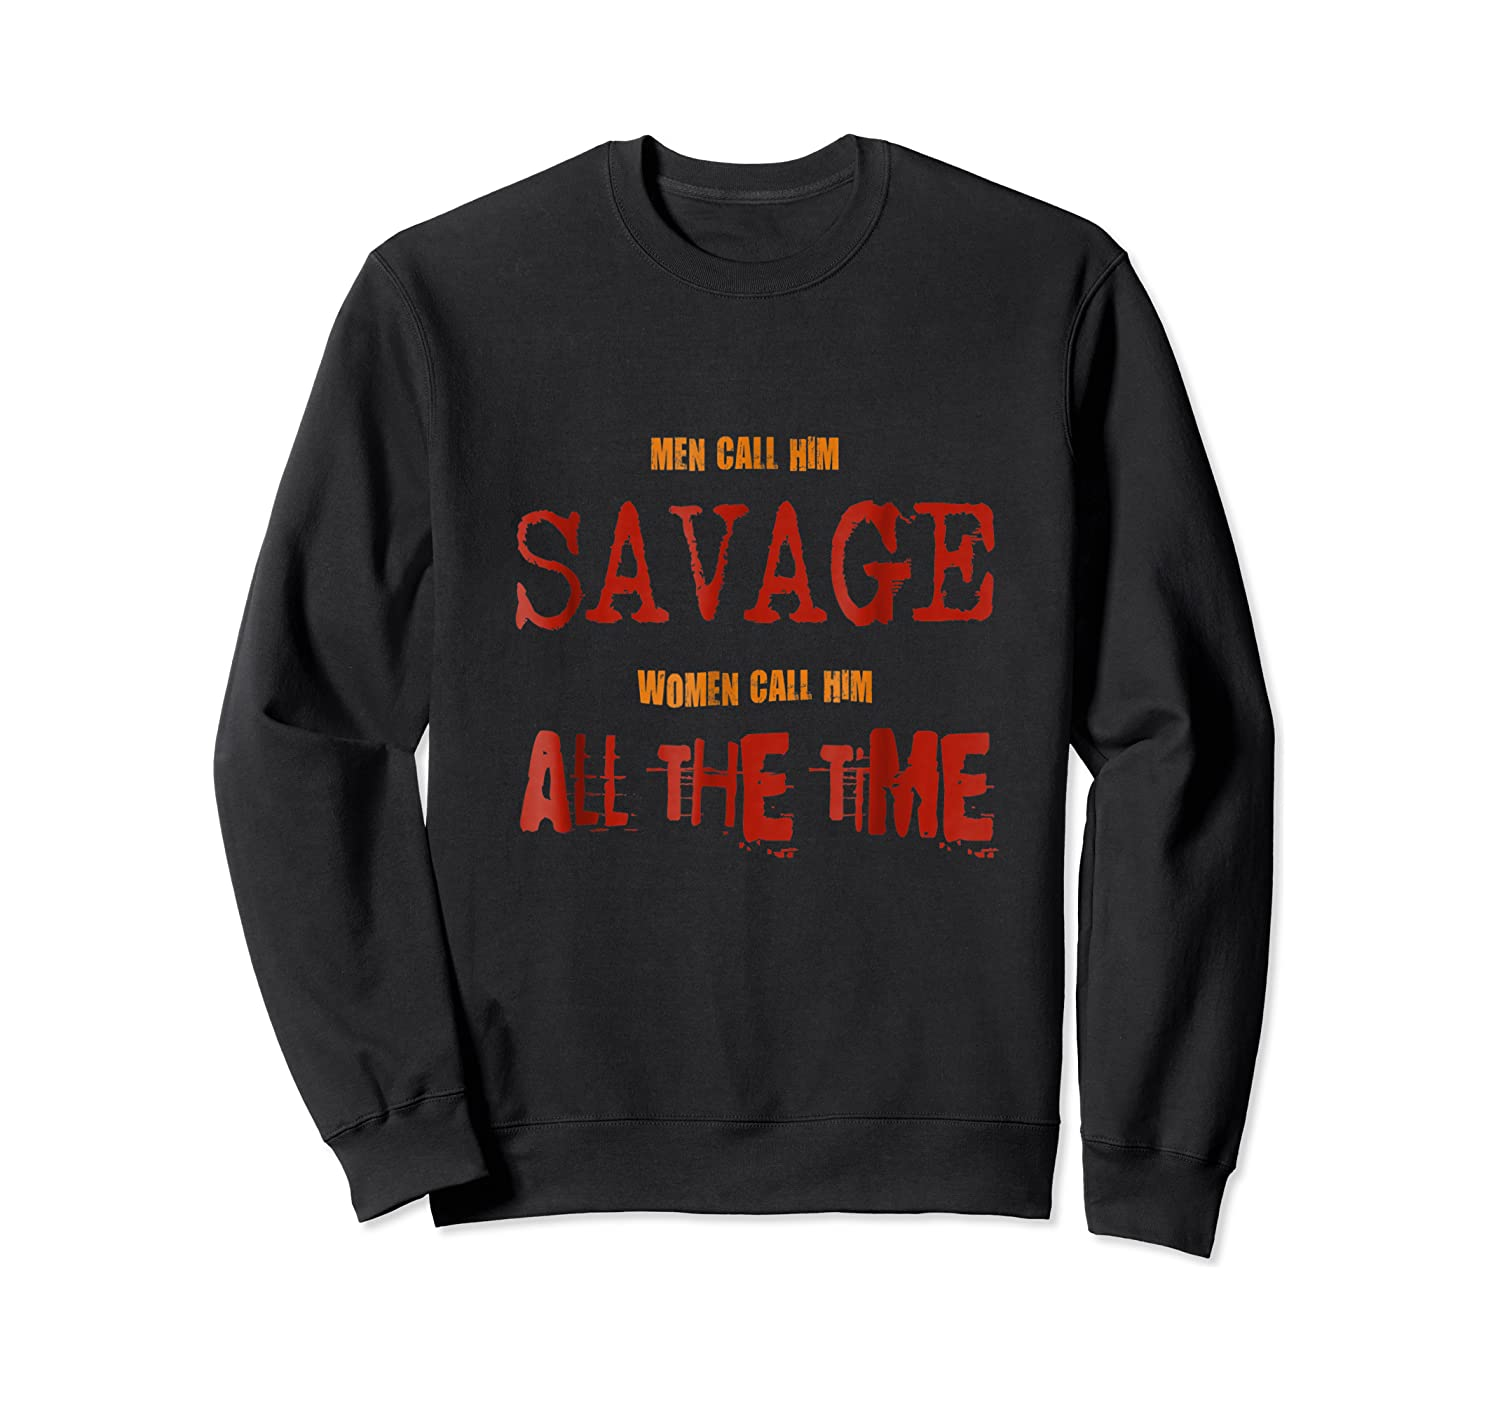 Savage All The Time Super Macho Alpha Distressed Funny Shirt Crewneck Sweater